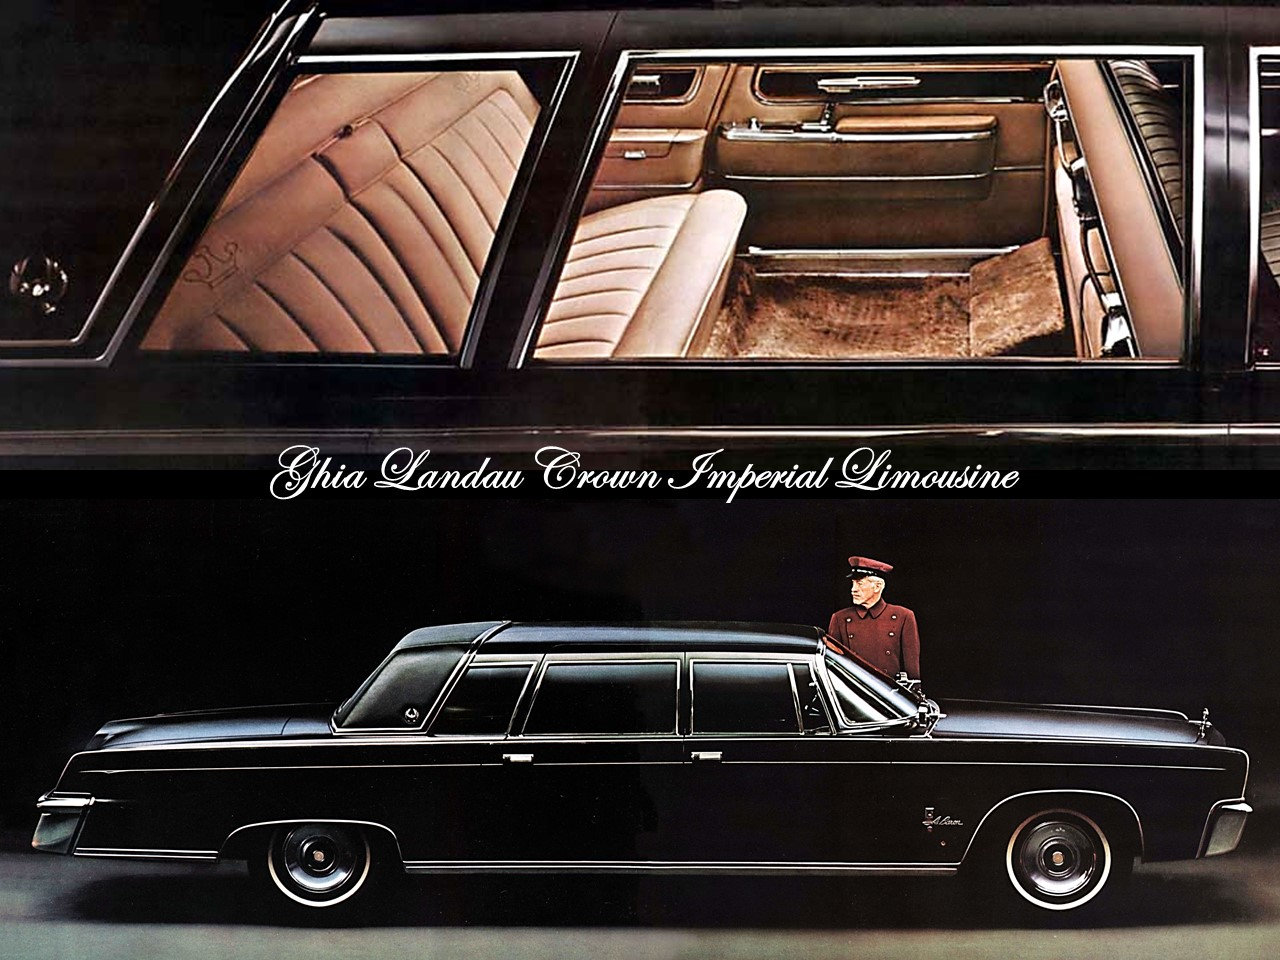 Chrysler Imperial Crown 1963 - 1965 Coupe-Hardtop #8